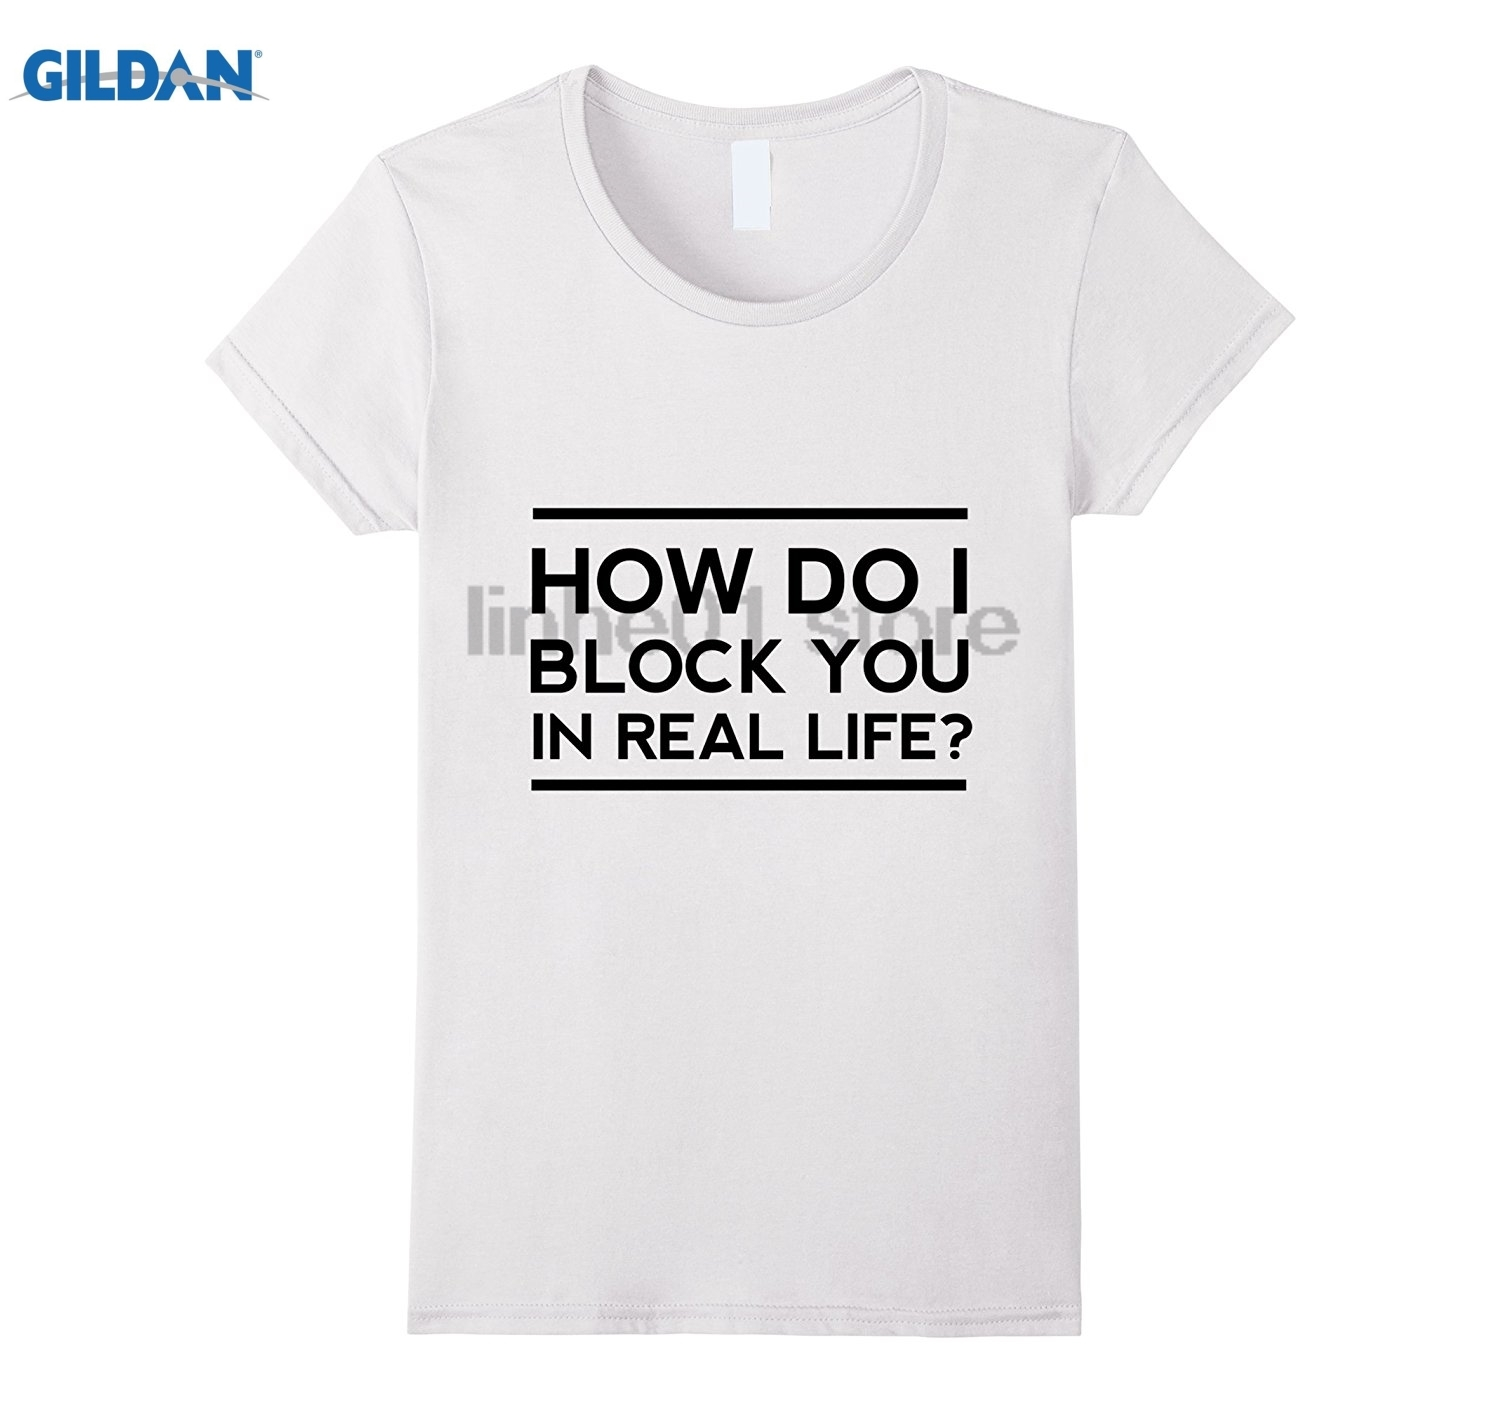 GILDAN How do I block you in real life Tshirt glasses Womens T-shirt Dress female T-shir ...